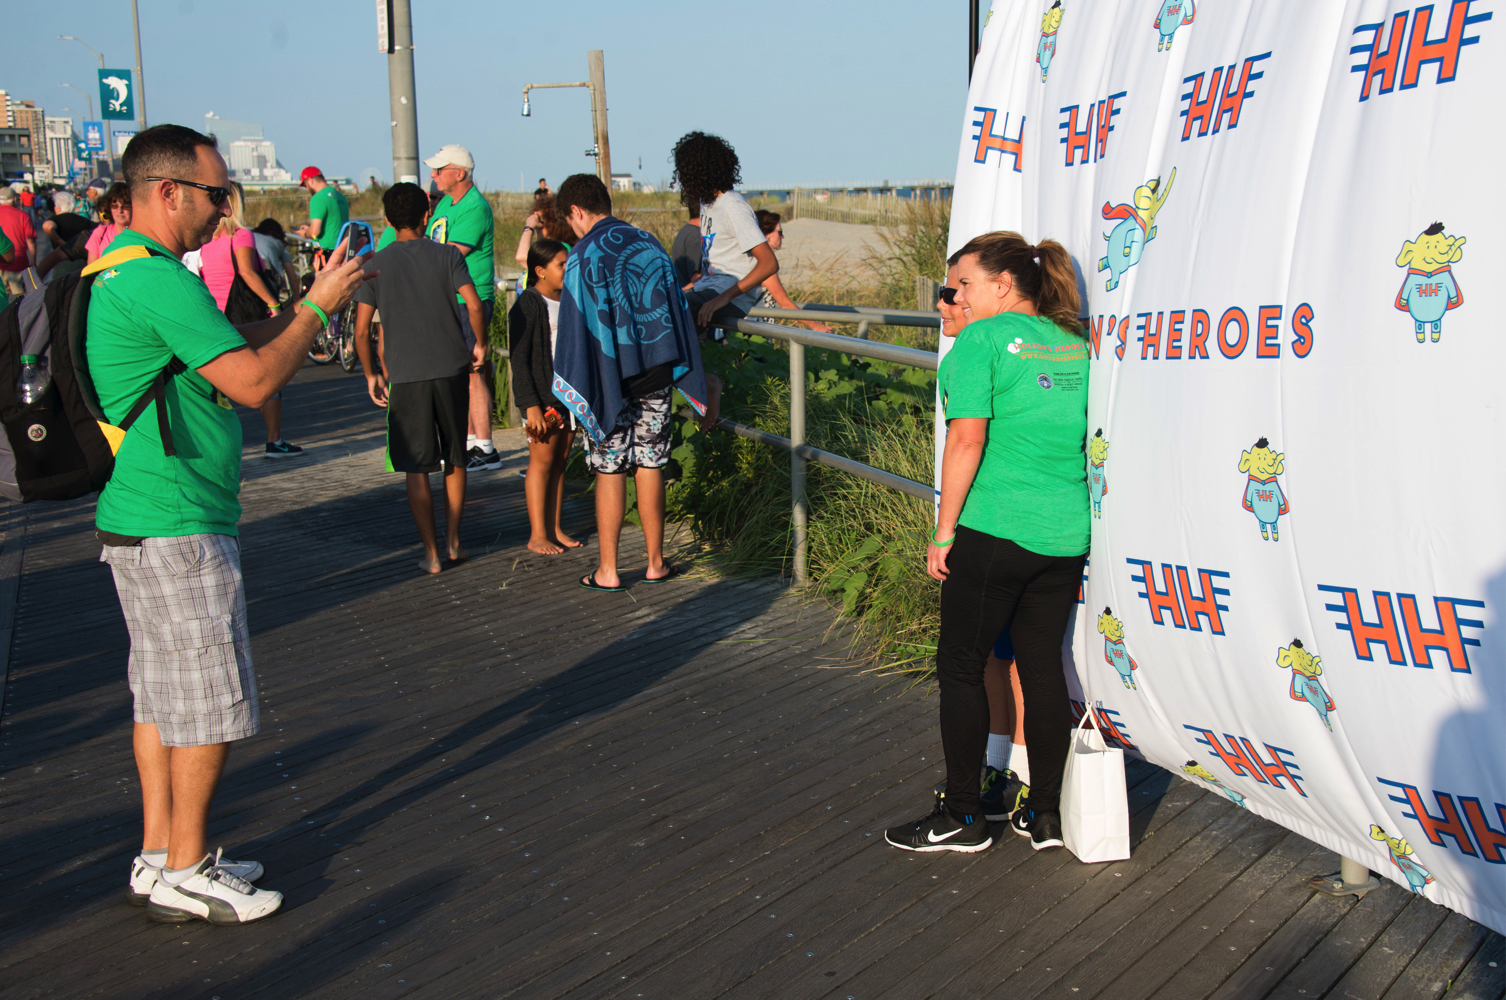 Take some photos in front of the Holton's Heroes step & repeat sign